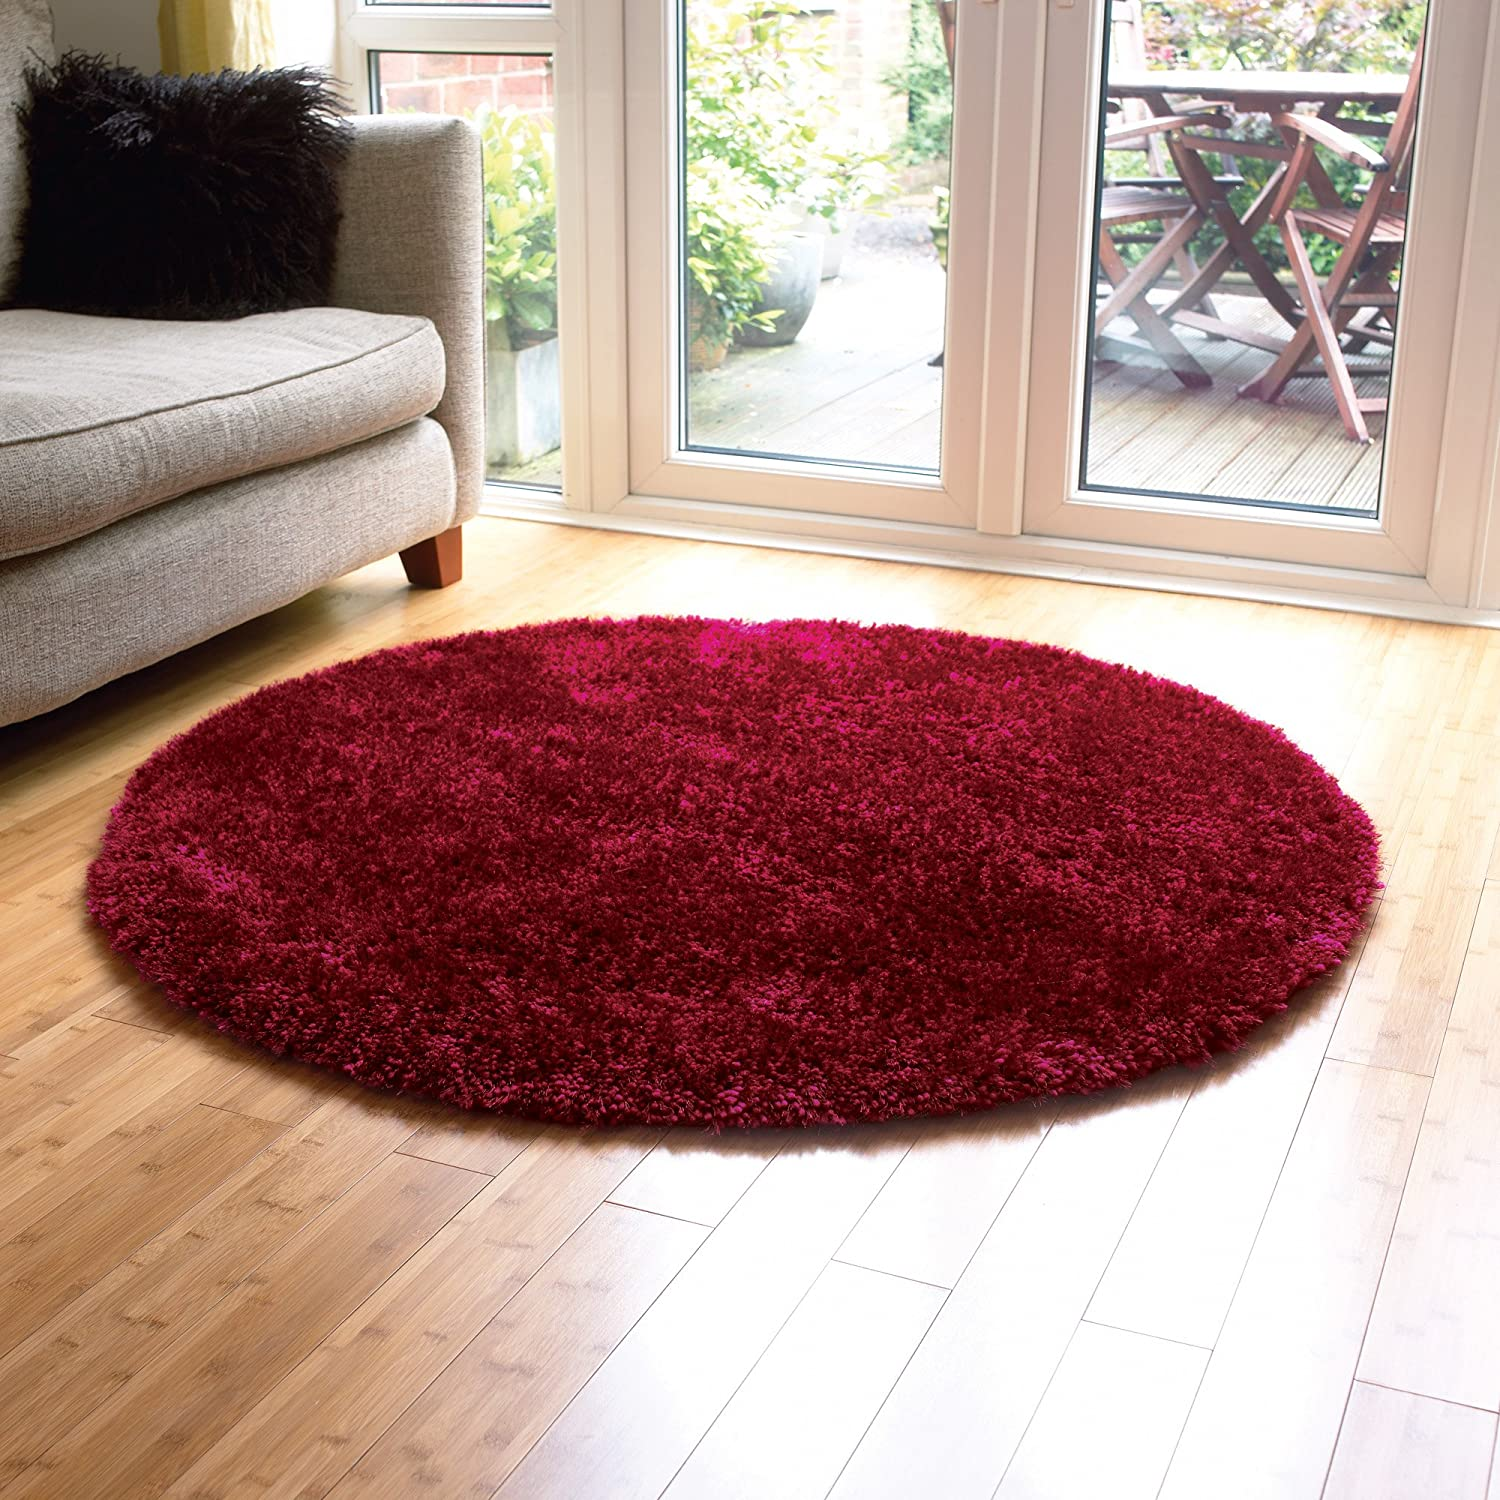 Large Modern Thick Shaggy Quality Plain Burgundy Round Rug In 135 X 135 Cm  (4u00274u0027u0027 X 4u00274u0027u0027) Carpet: Amazon.co.uk: Kitchen U0026 Home